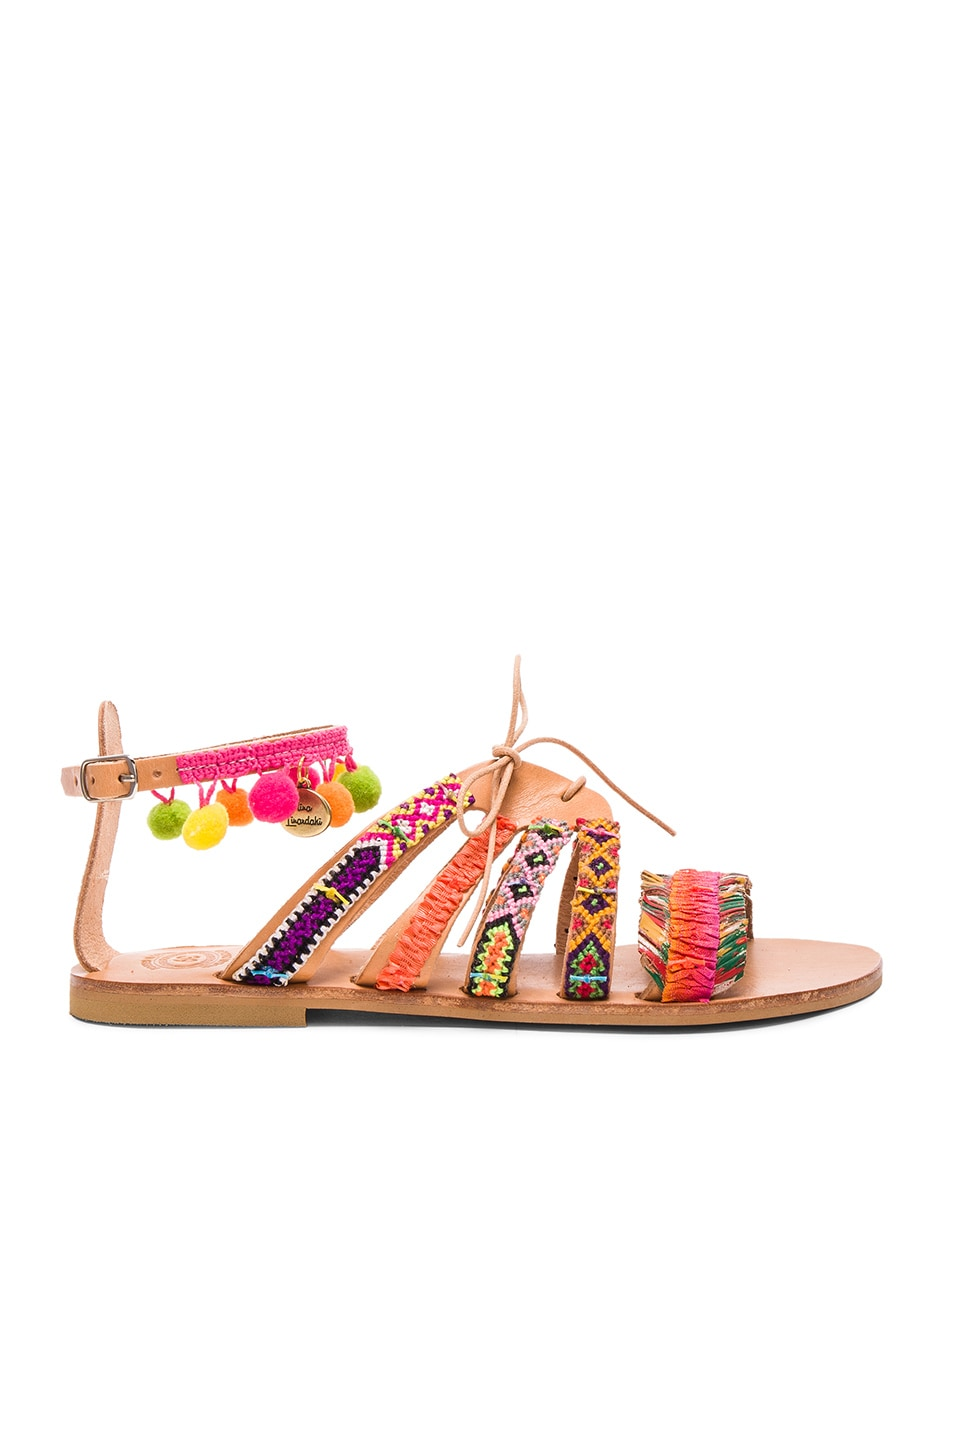 Image 2 of Elina Linardaki Leather Hula Hoop Sandals in Multi